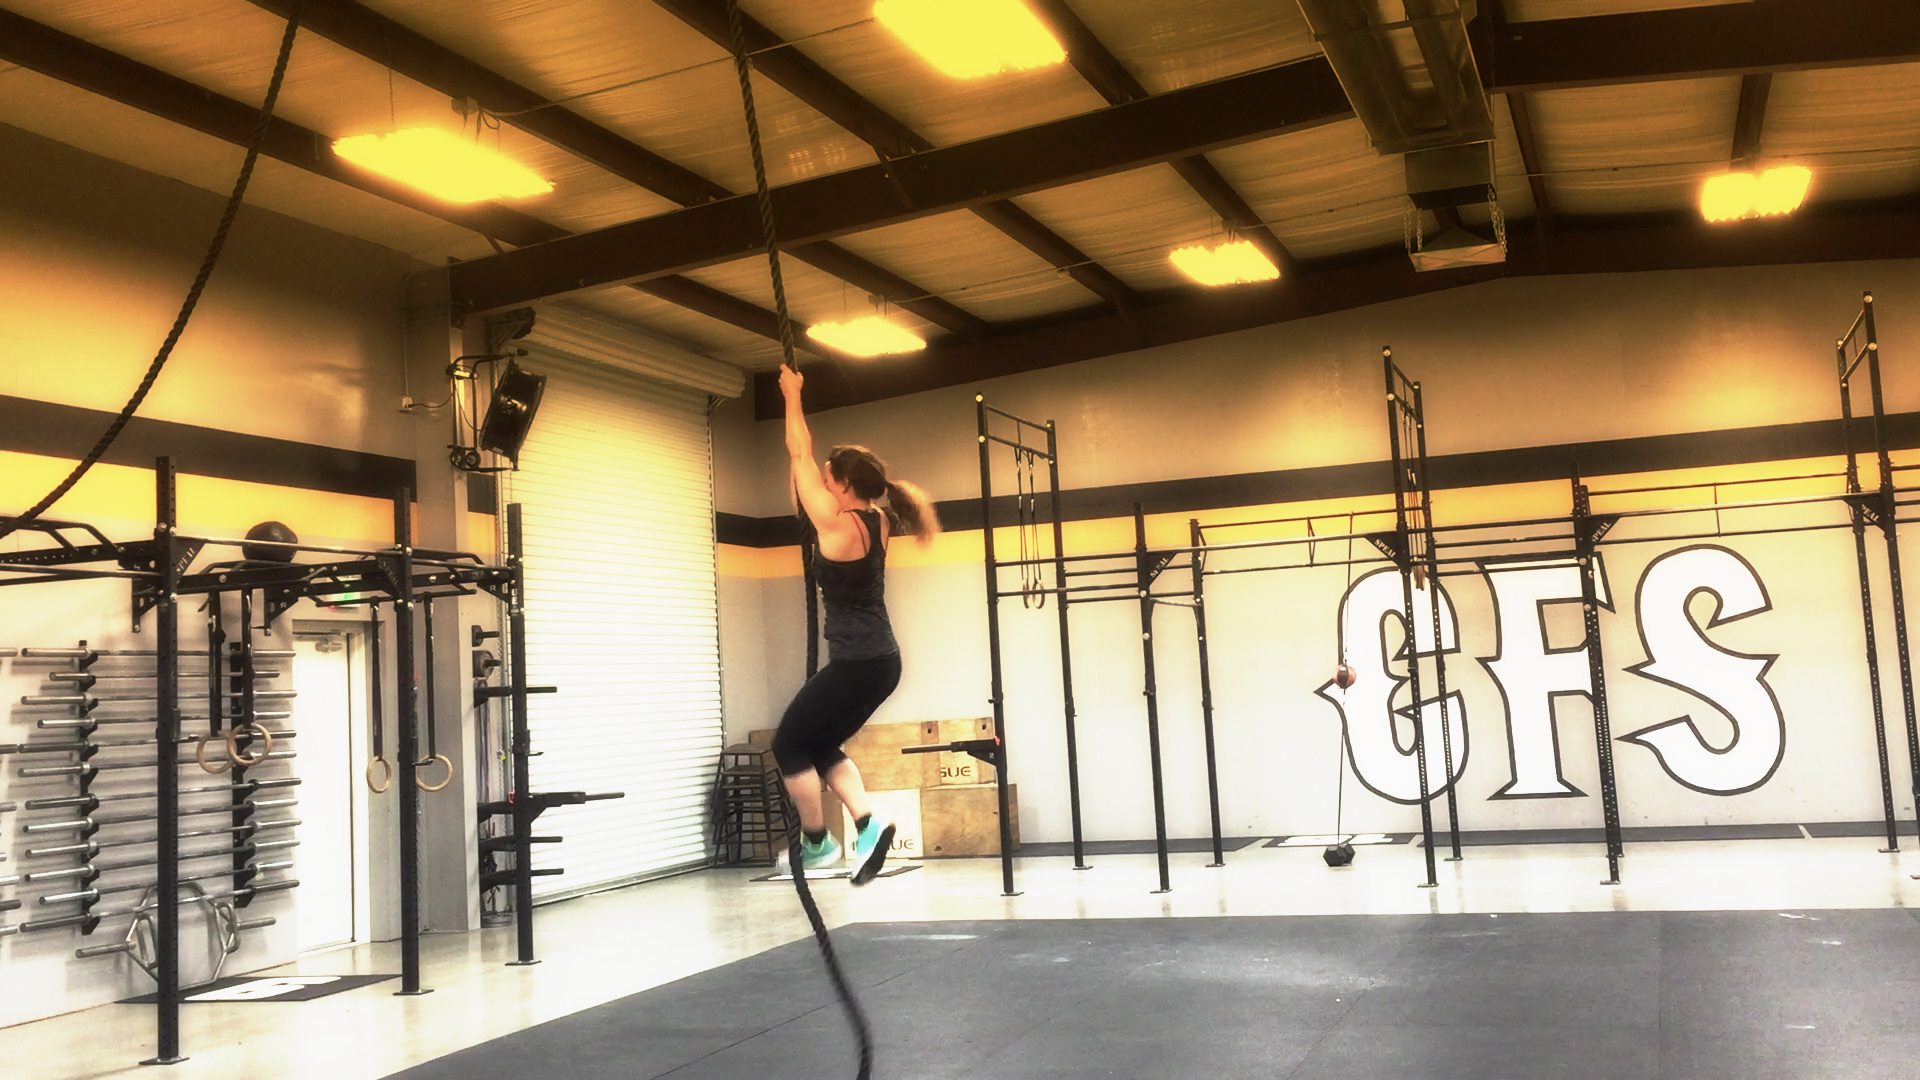 Crossfit after losing weight with hCG injections- hcgchica.com